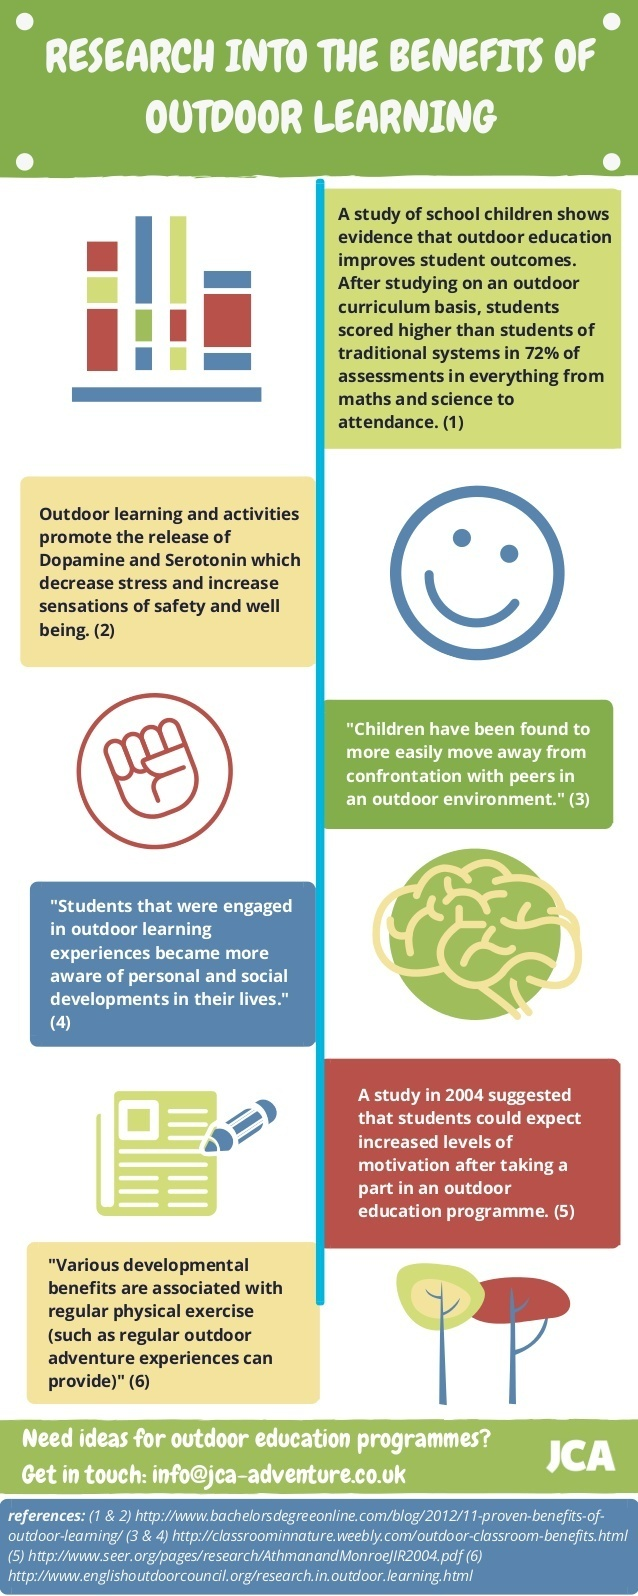 Research into the Benefits of Outdoor Learning Infographic